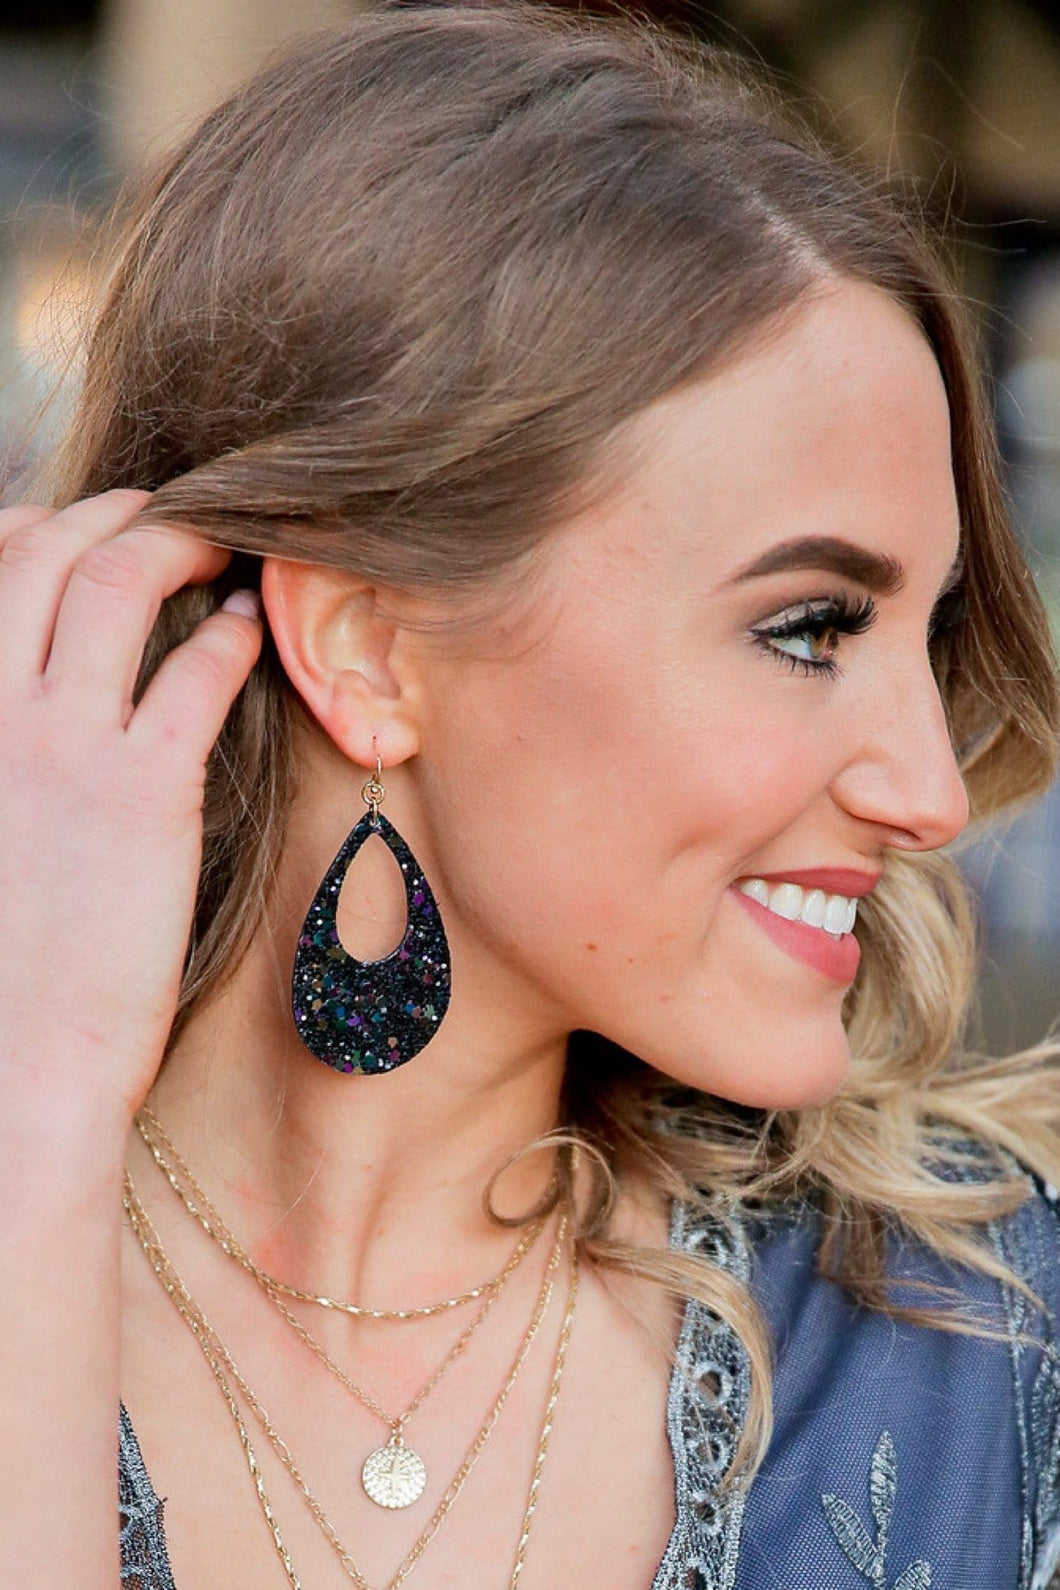 SEQUIN BLACK TEAR DROP EARRINGS - Infinity Raine